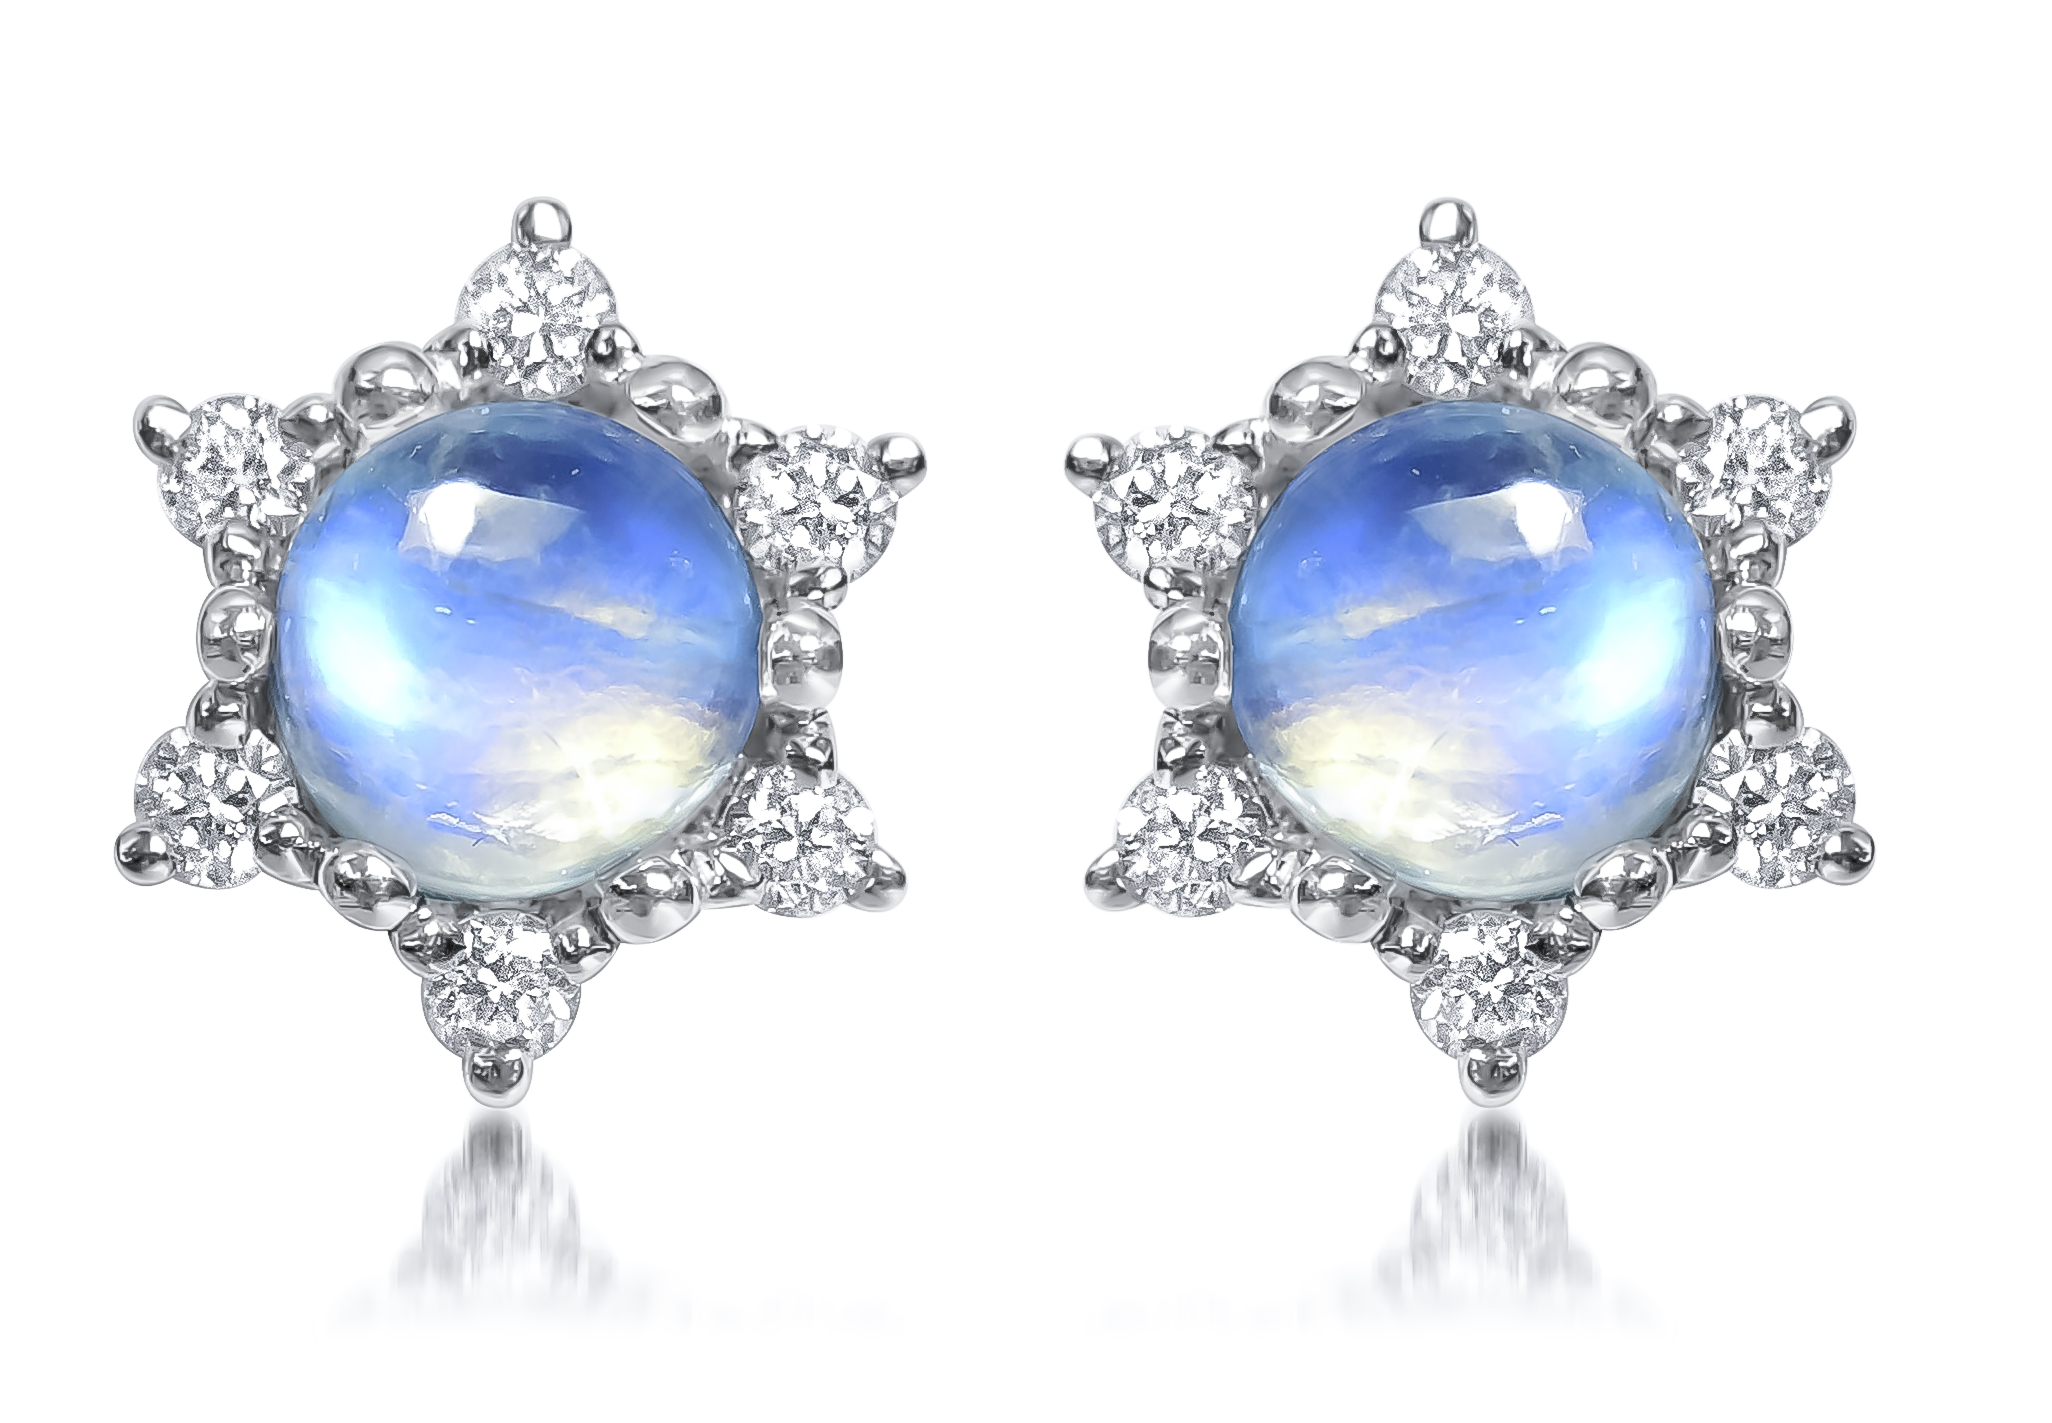 Ayva Venus collection moonstone earrings | JCK On Your Market